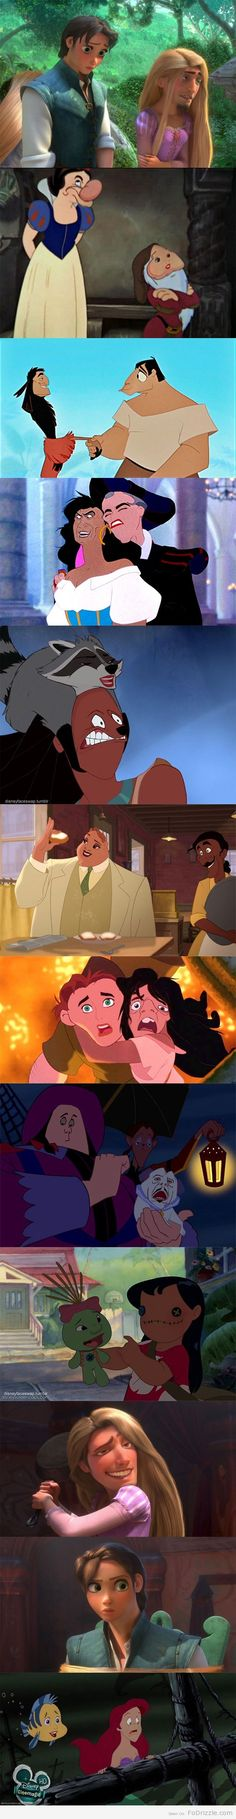 Disney Face juggles  (it got me at the emperor's new groove lolol)